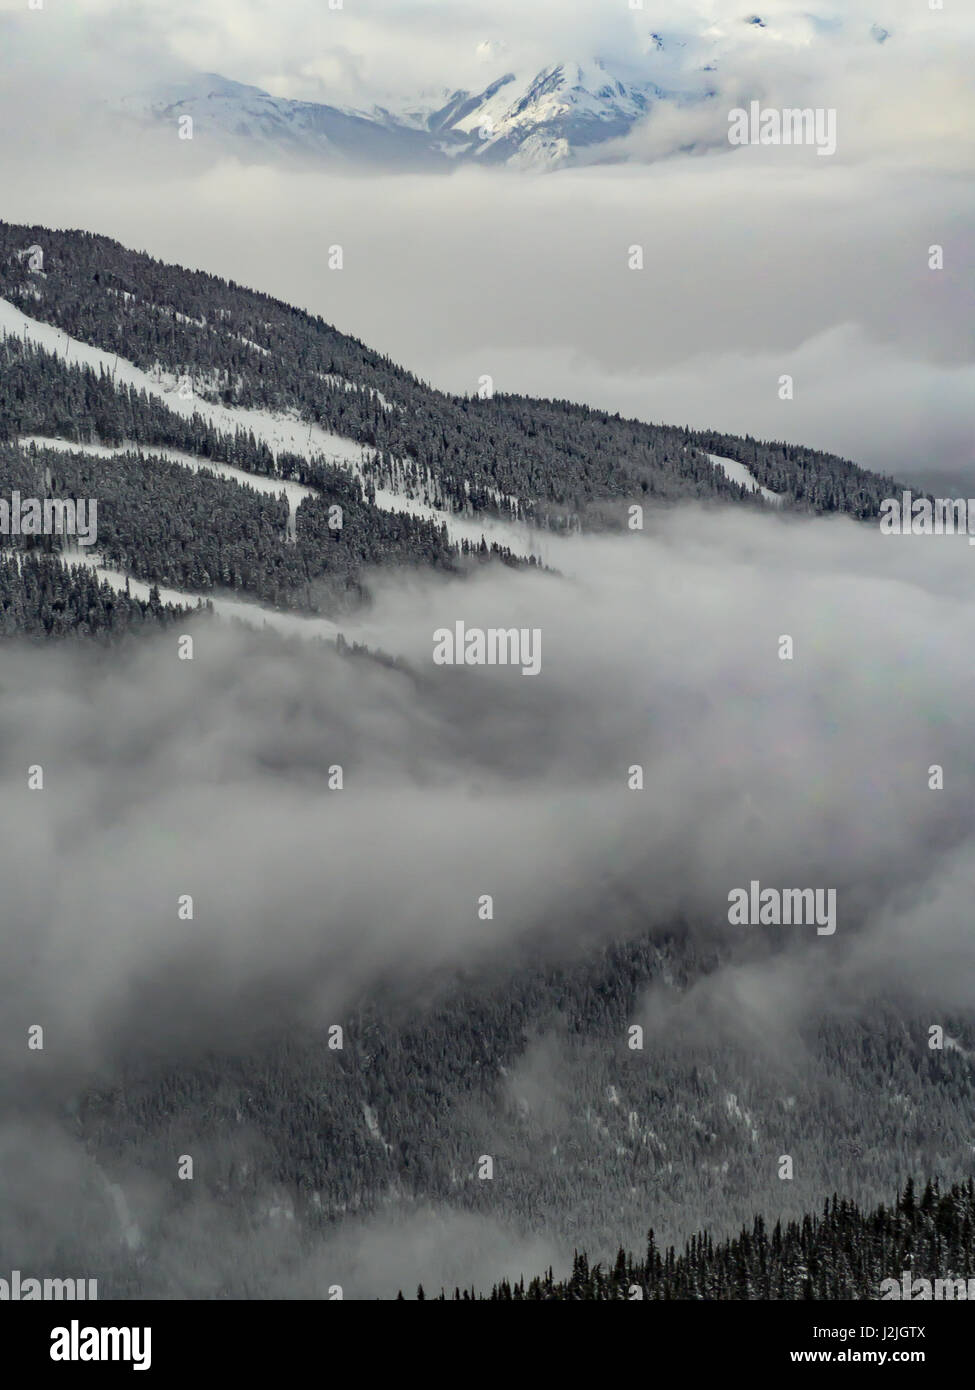 Foggy view of mountains in Whistler Canada. - Stock Image